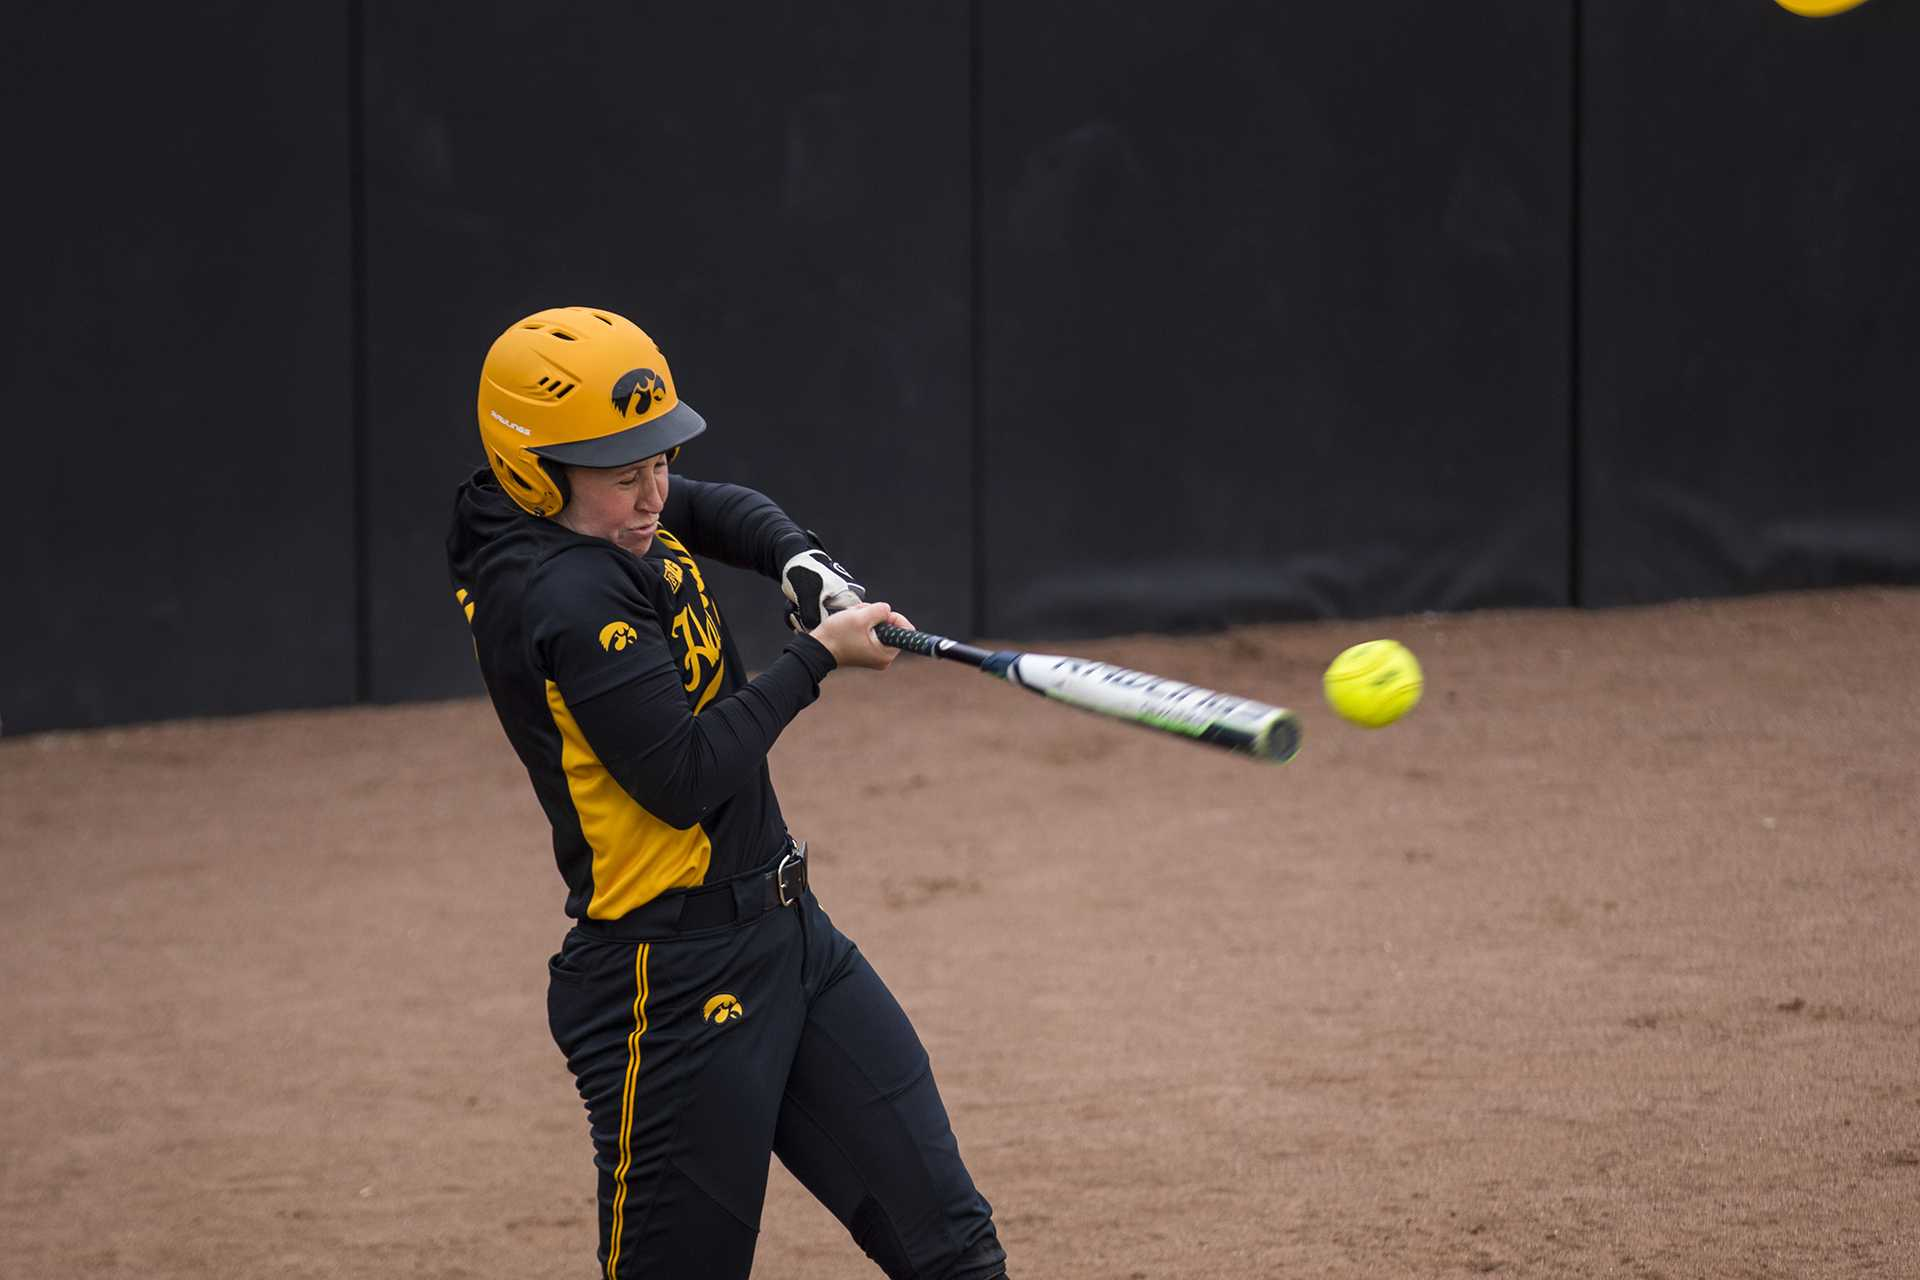 Photos: Iowa softball vs Wisconsin game 3